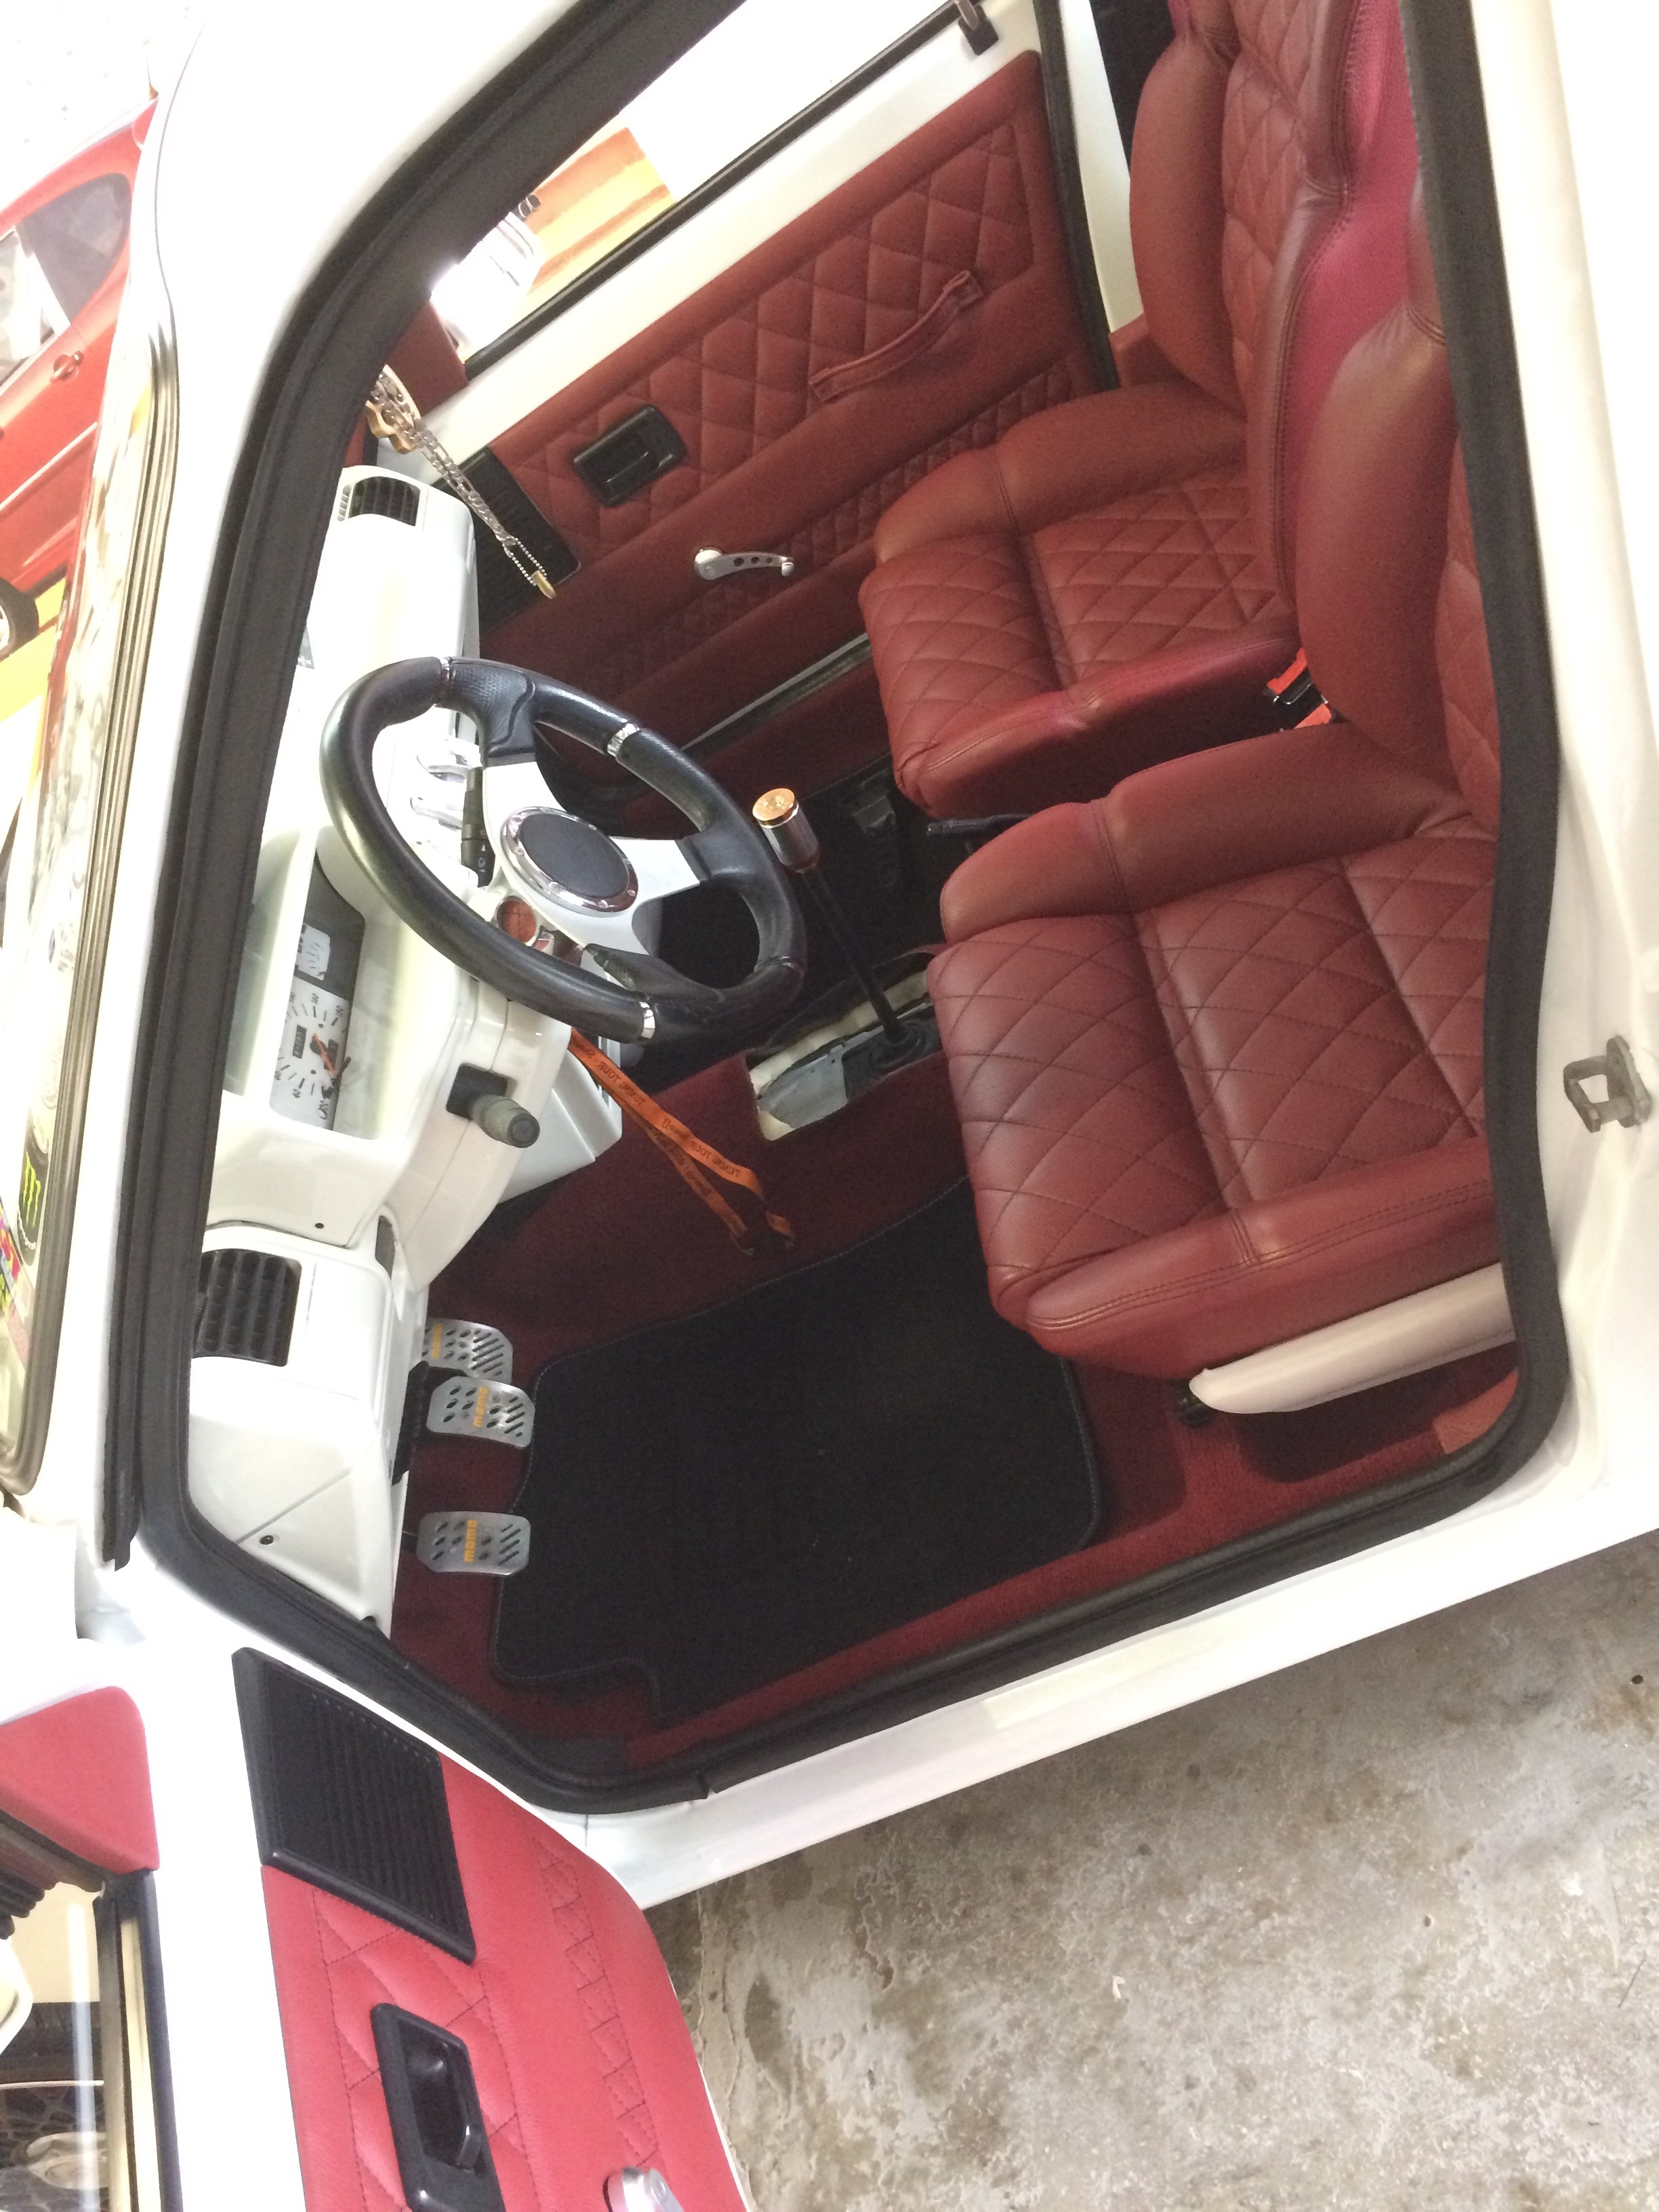 peugeot 205 tuning static car french car low style clean (12)